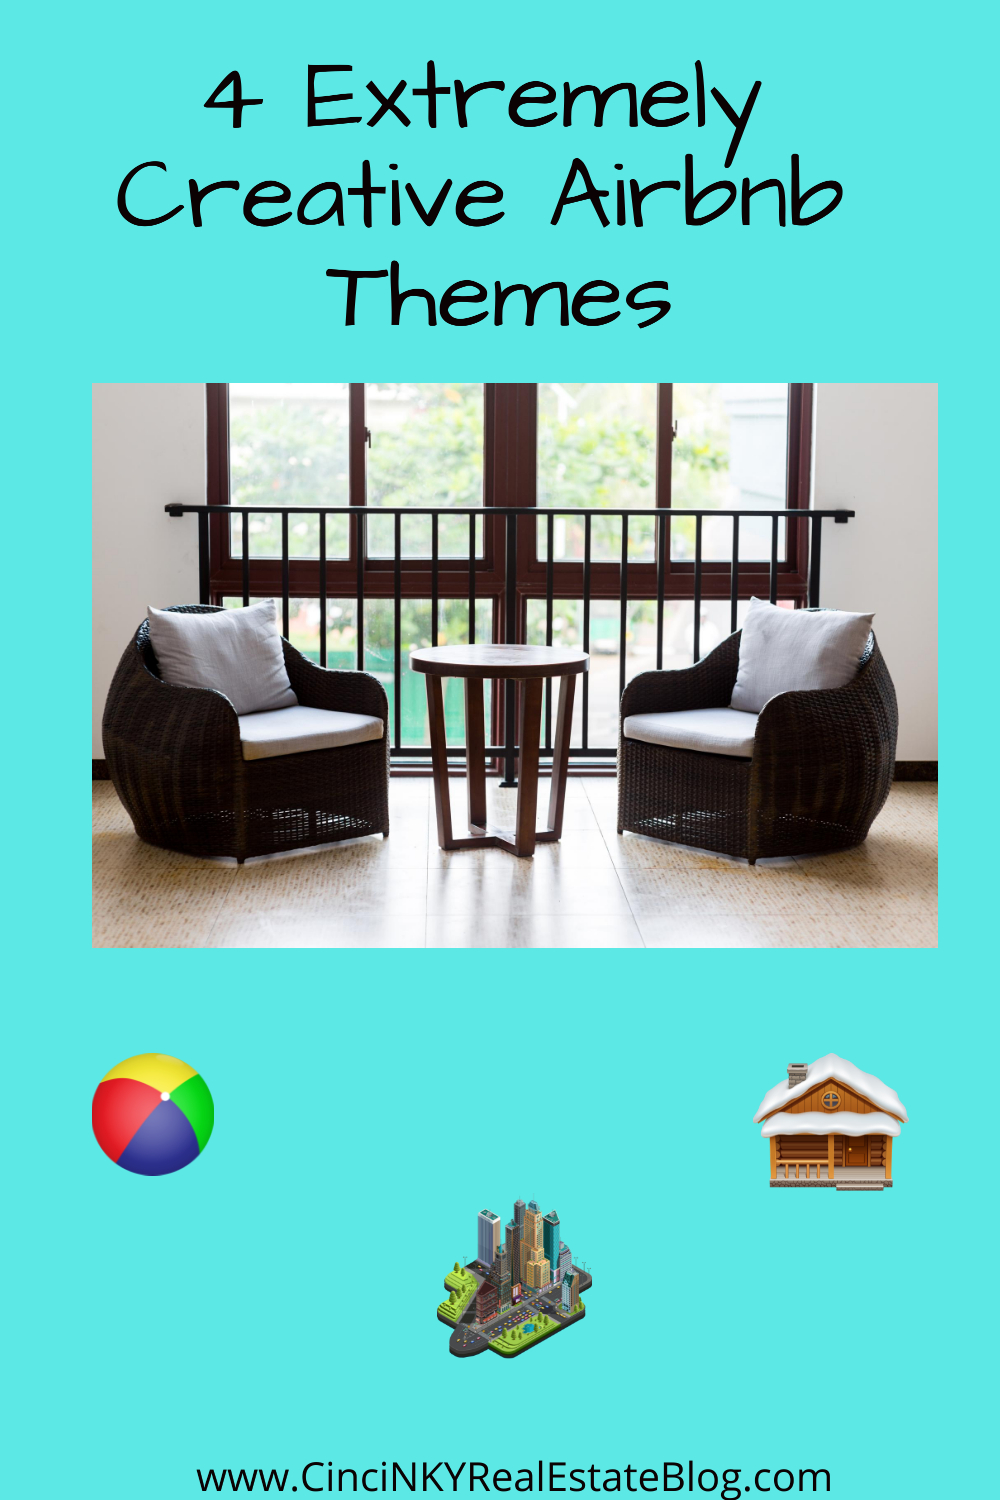 4 Extremely Creative Airbnb Themes